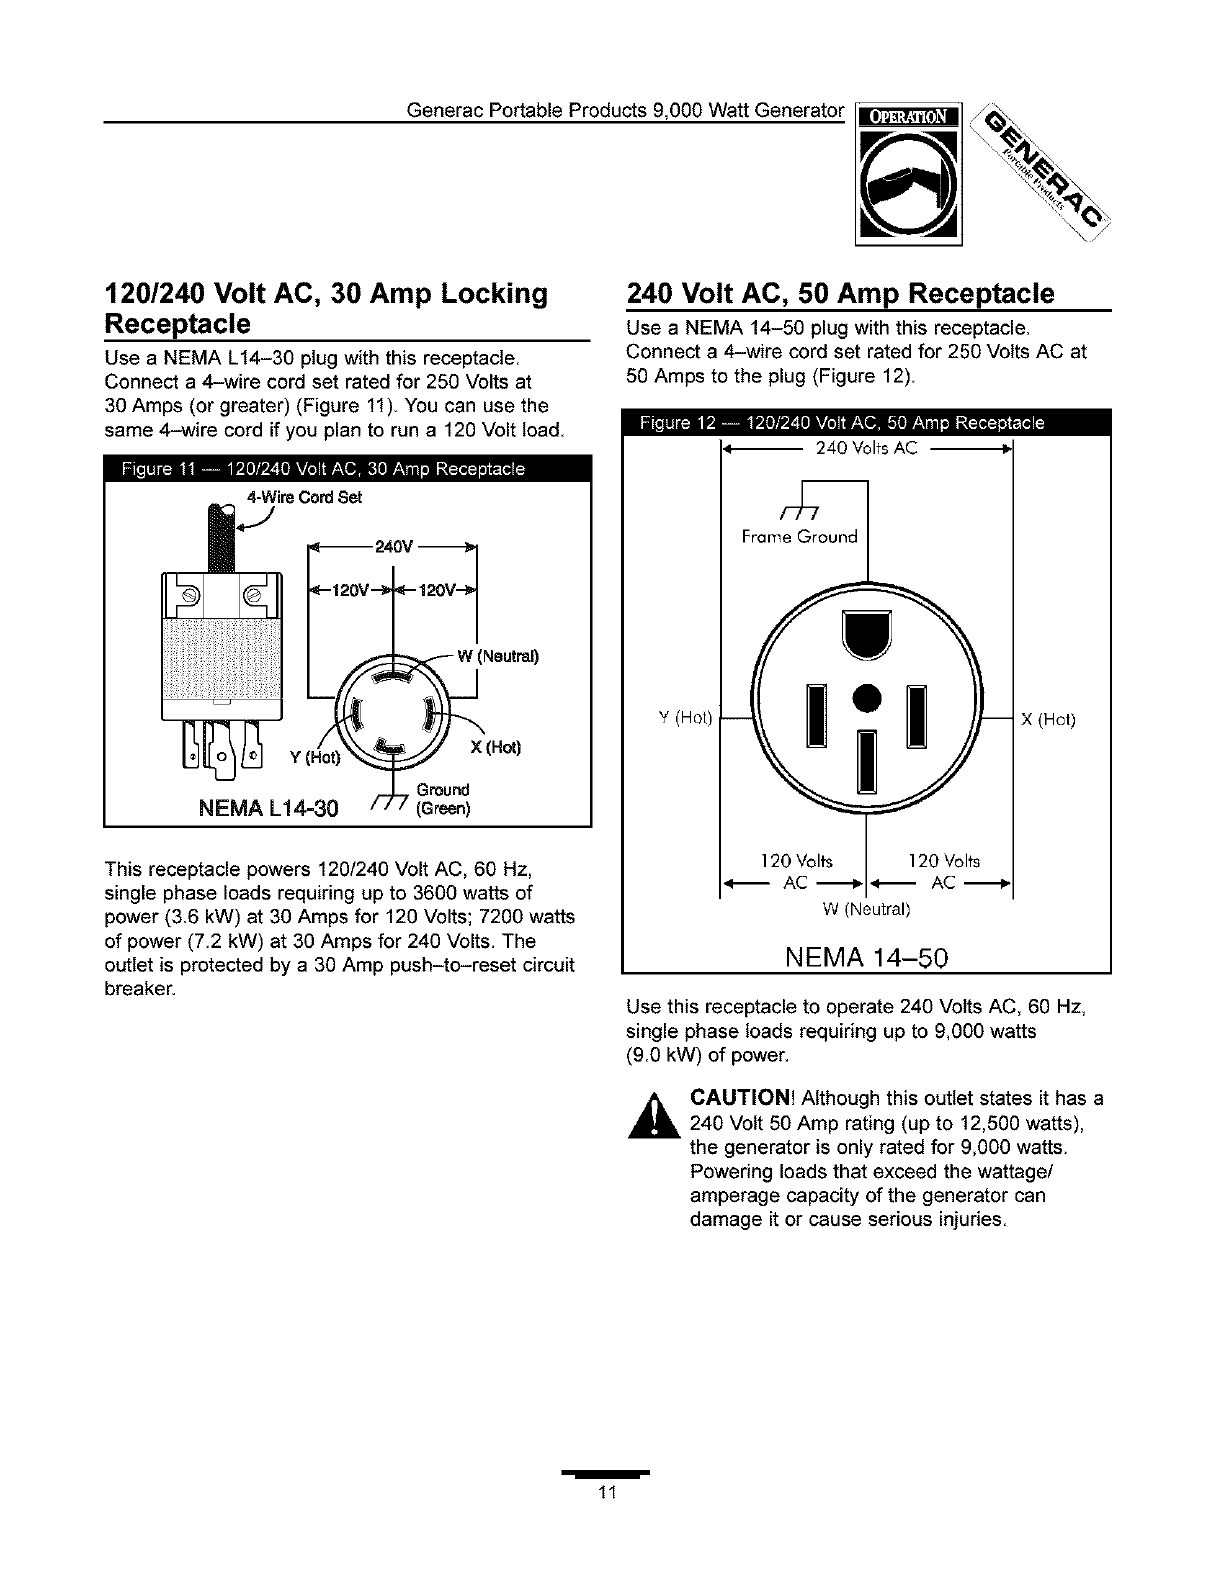 Generac 1338 1 User Manual Generator Manuals And Guides L0403233 Diagram For 240 Volts 4 Wire Generacportableproducts9000wattgenerator 120 Volt